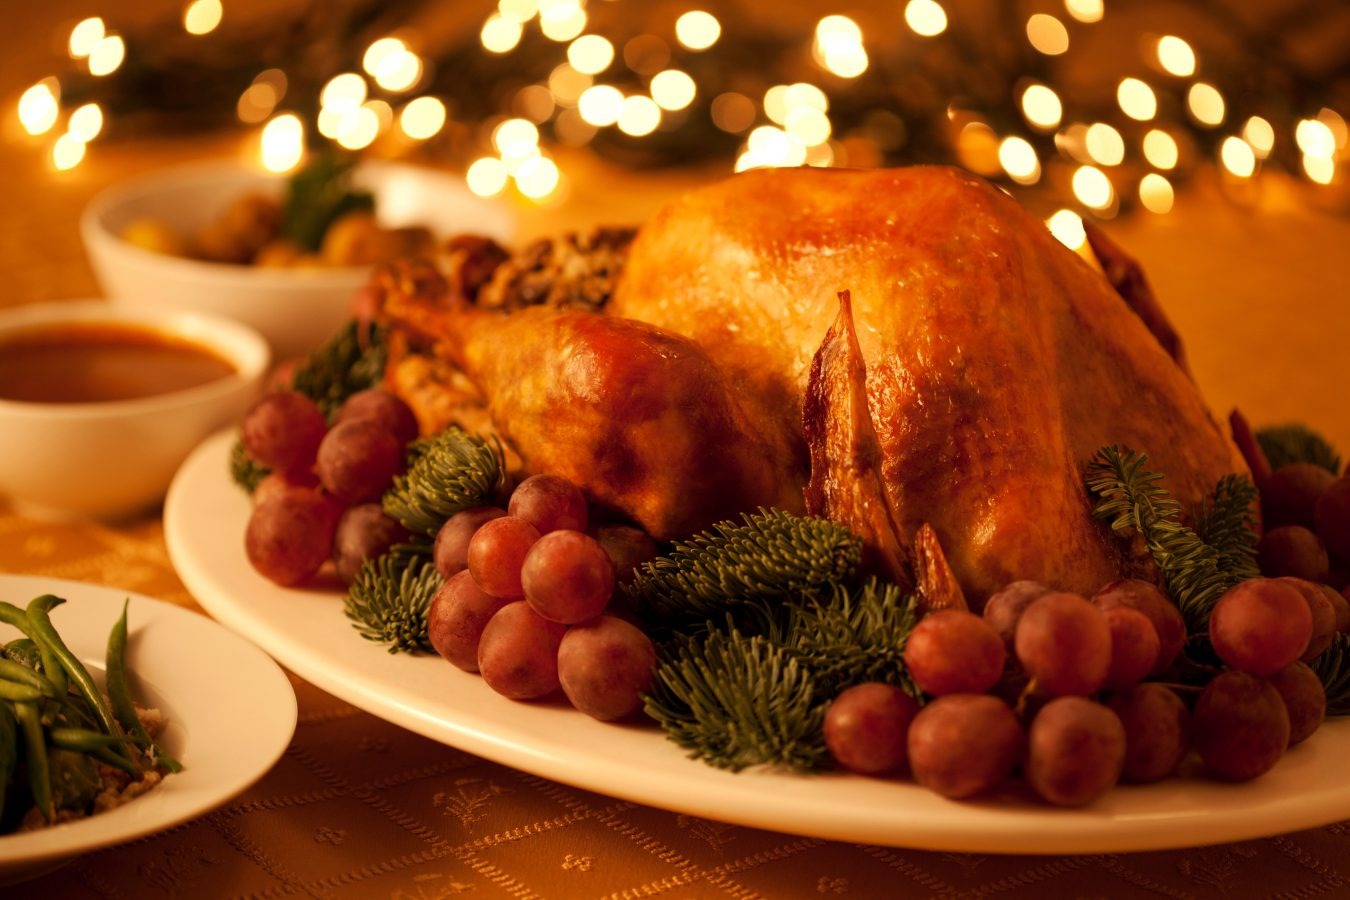 Delicious Christmas Turkey from Meliã Desert Palm Dubai